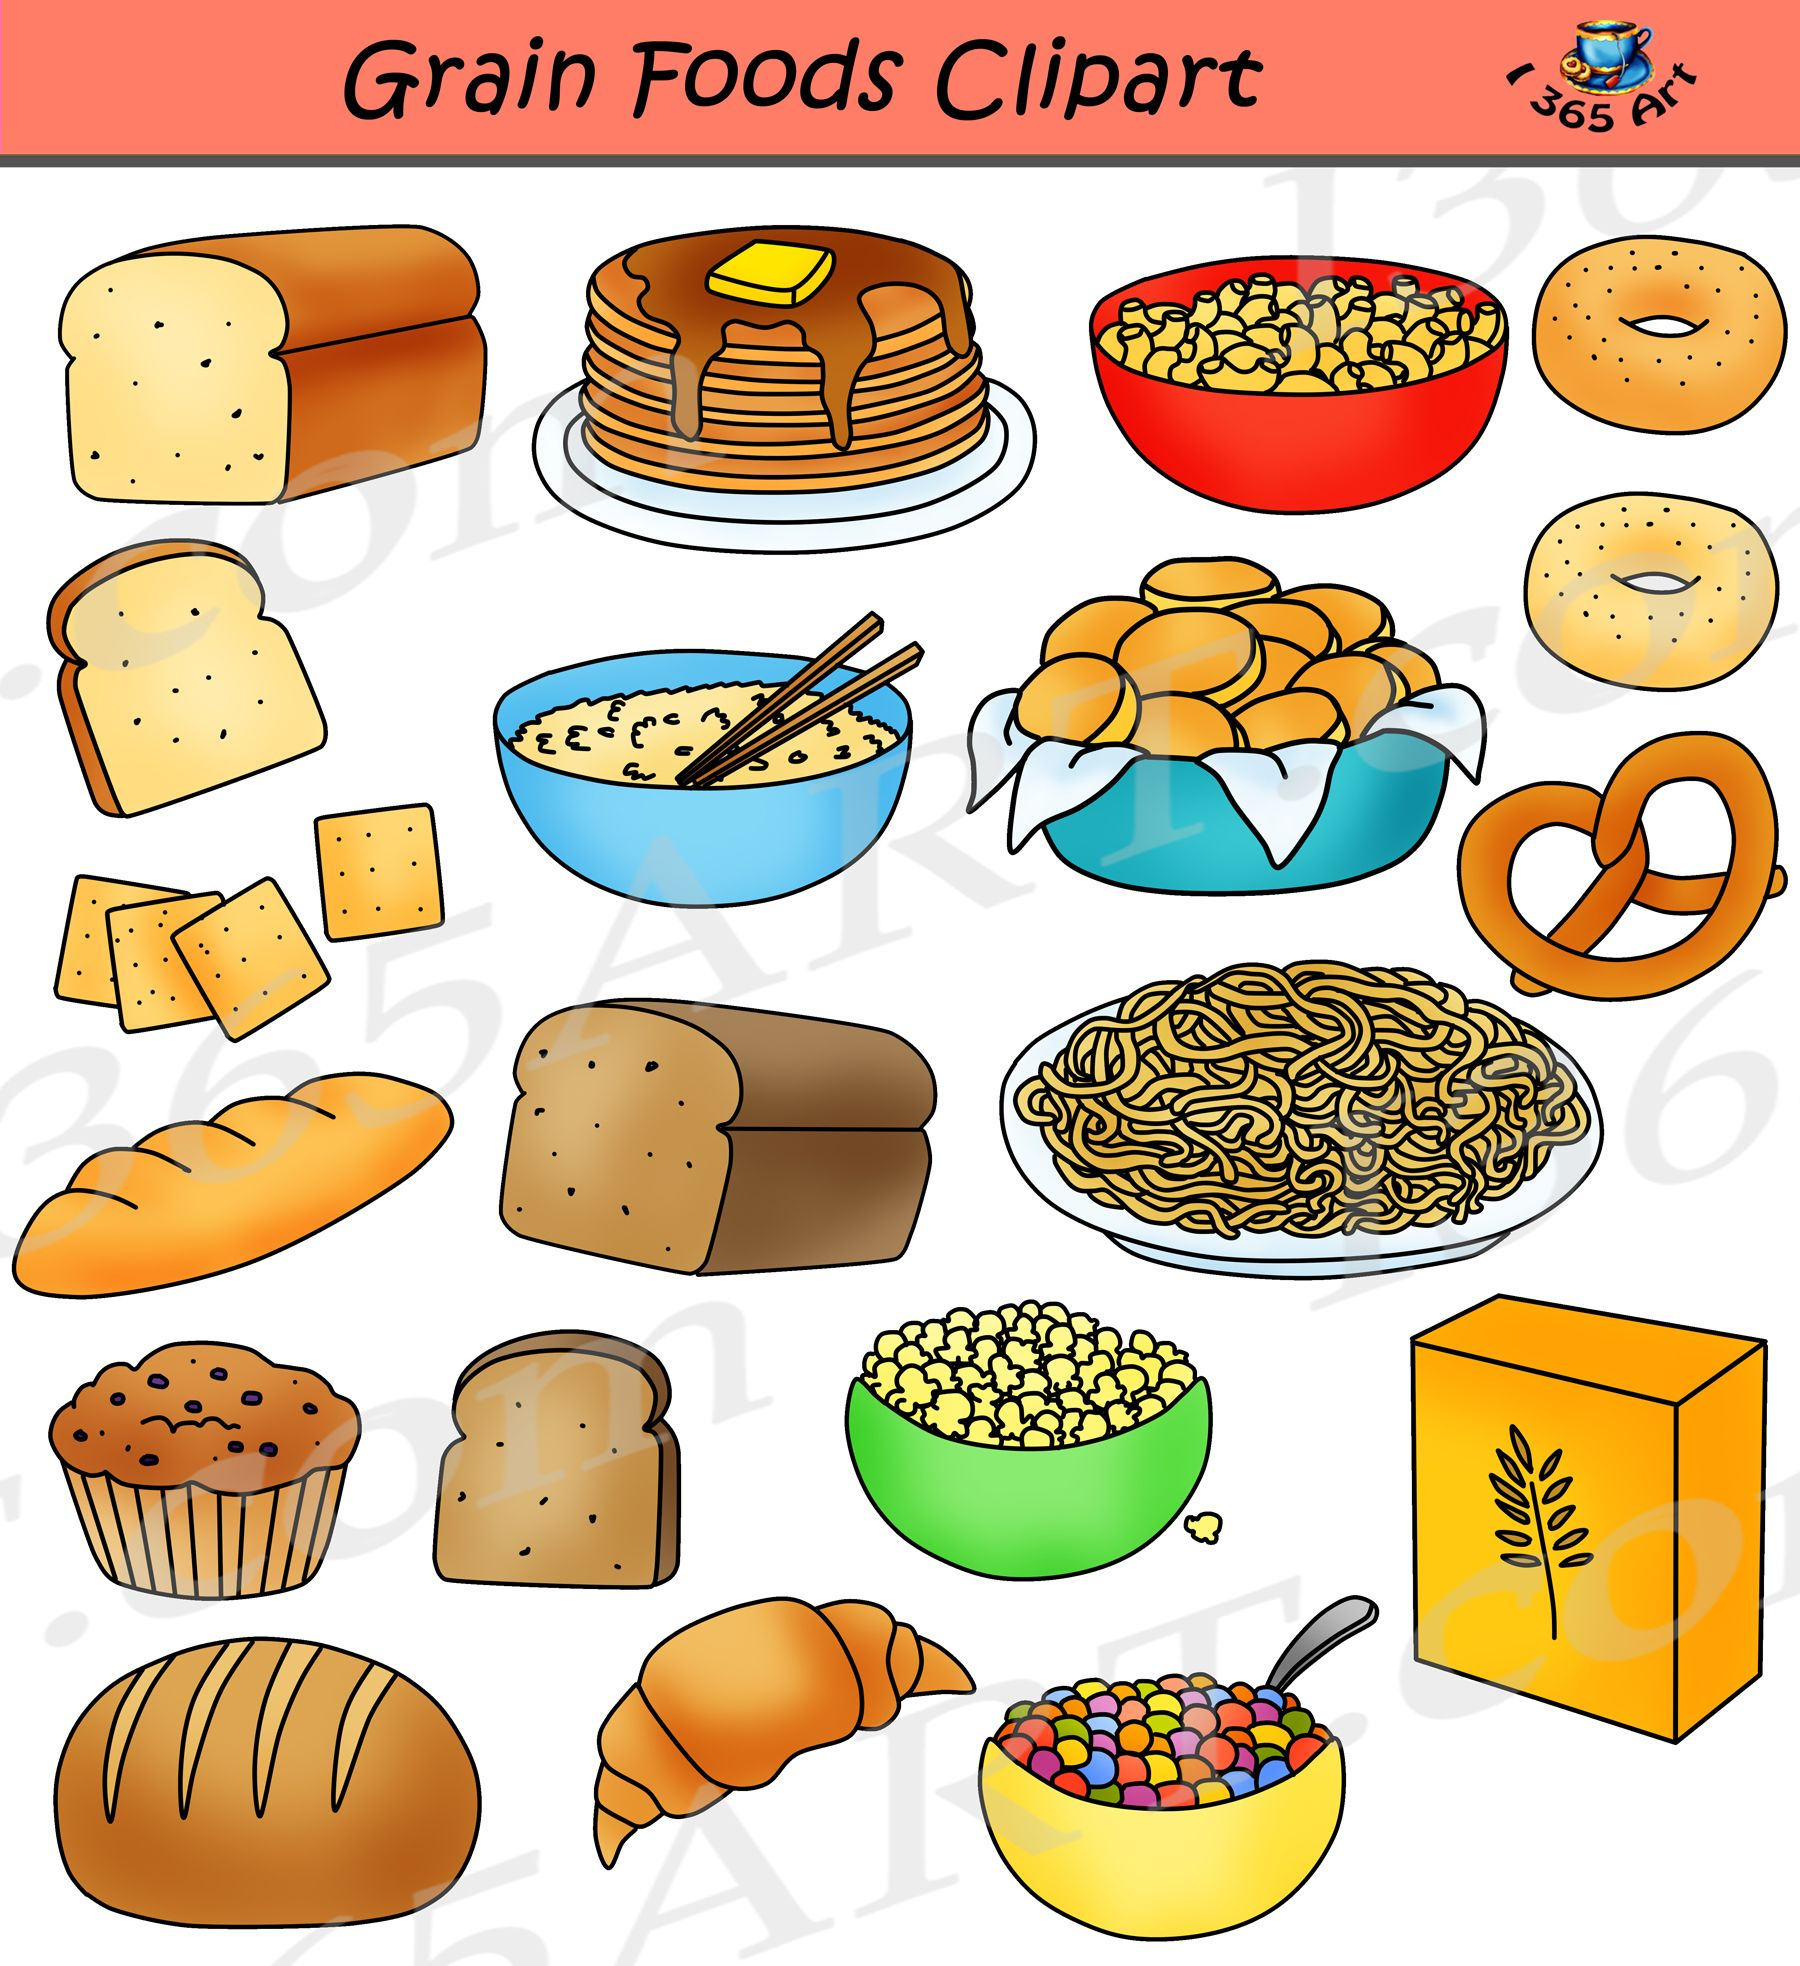 Grains Clipart Grain Food Group Grains Grain Food Group